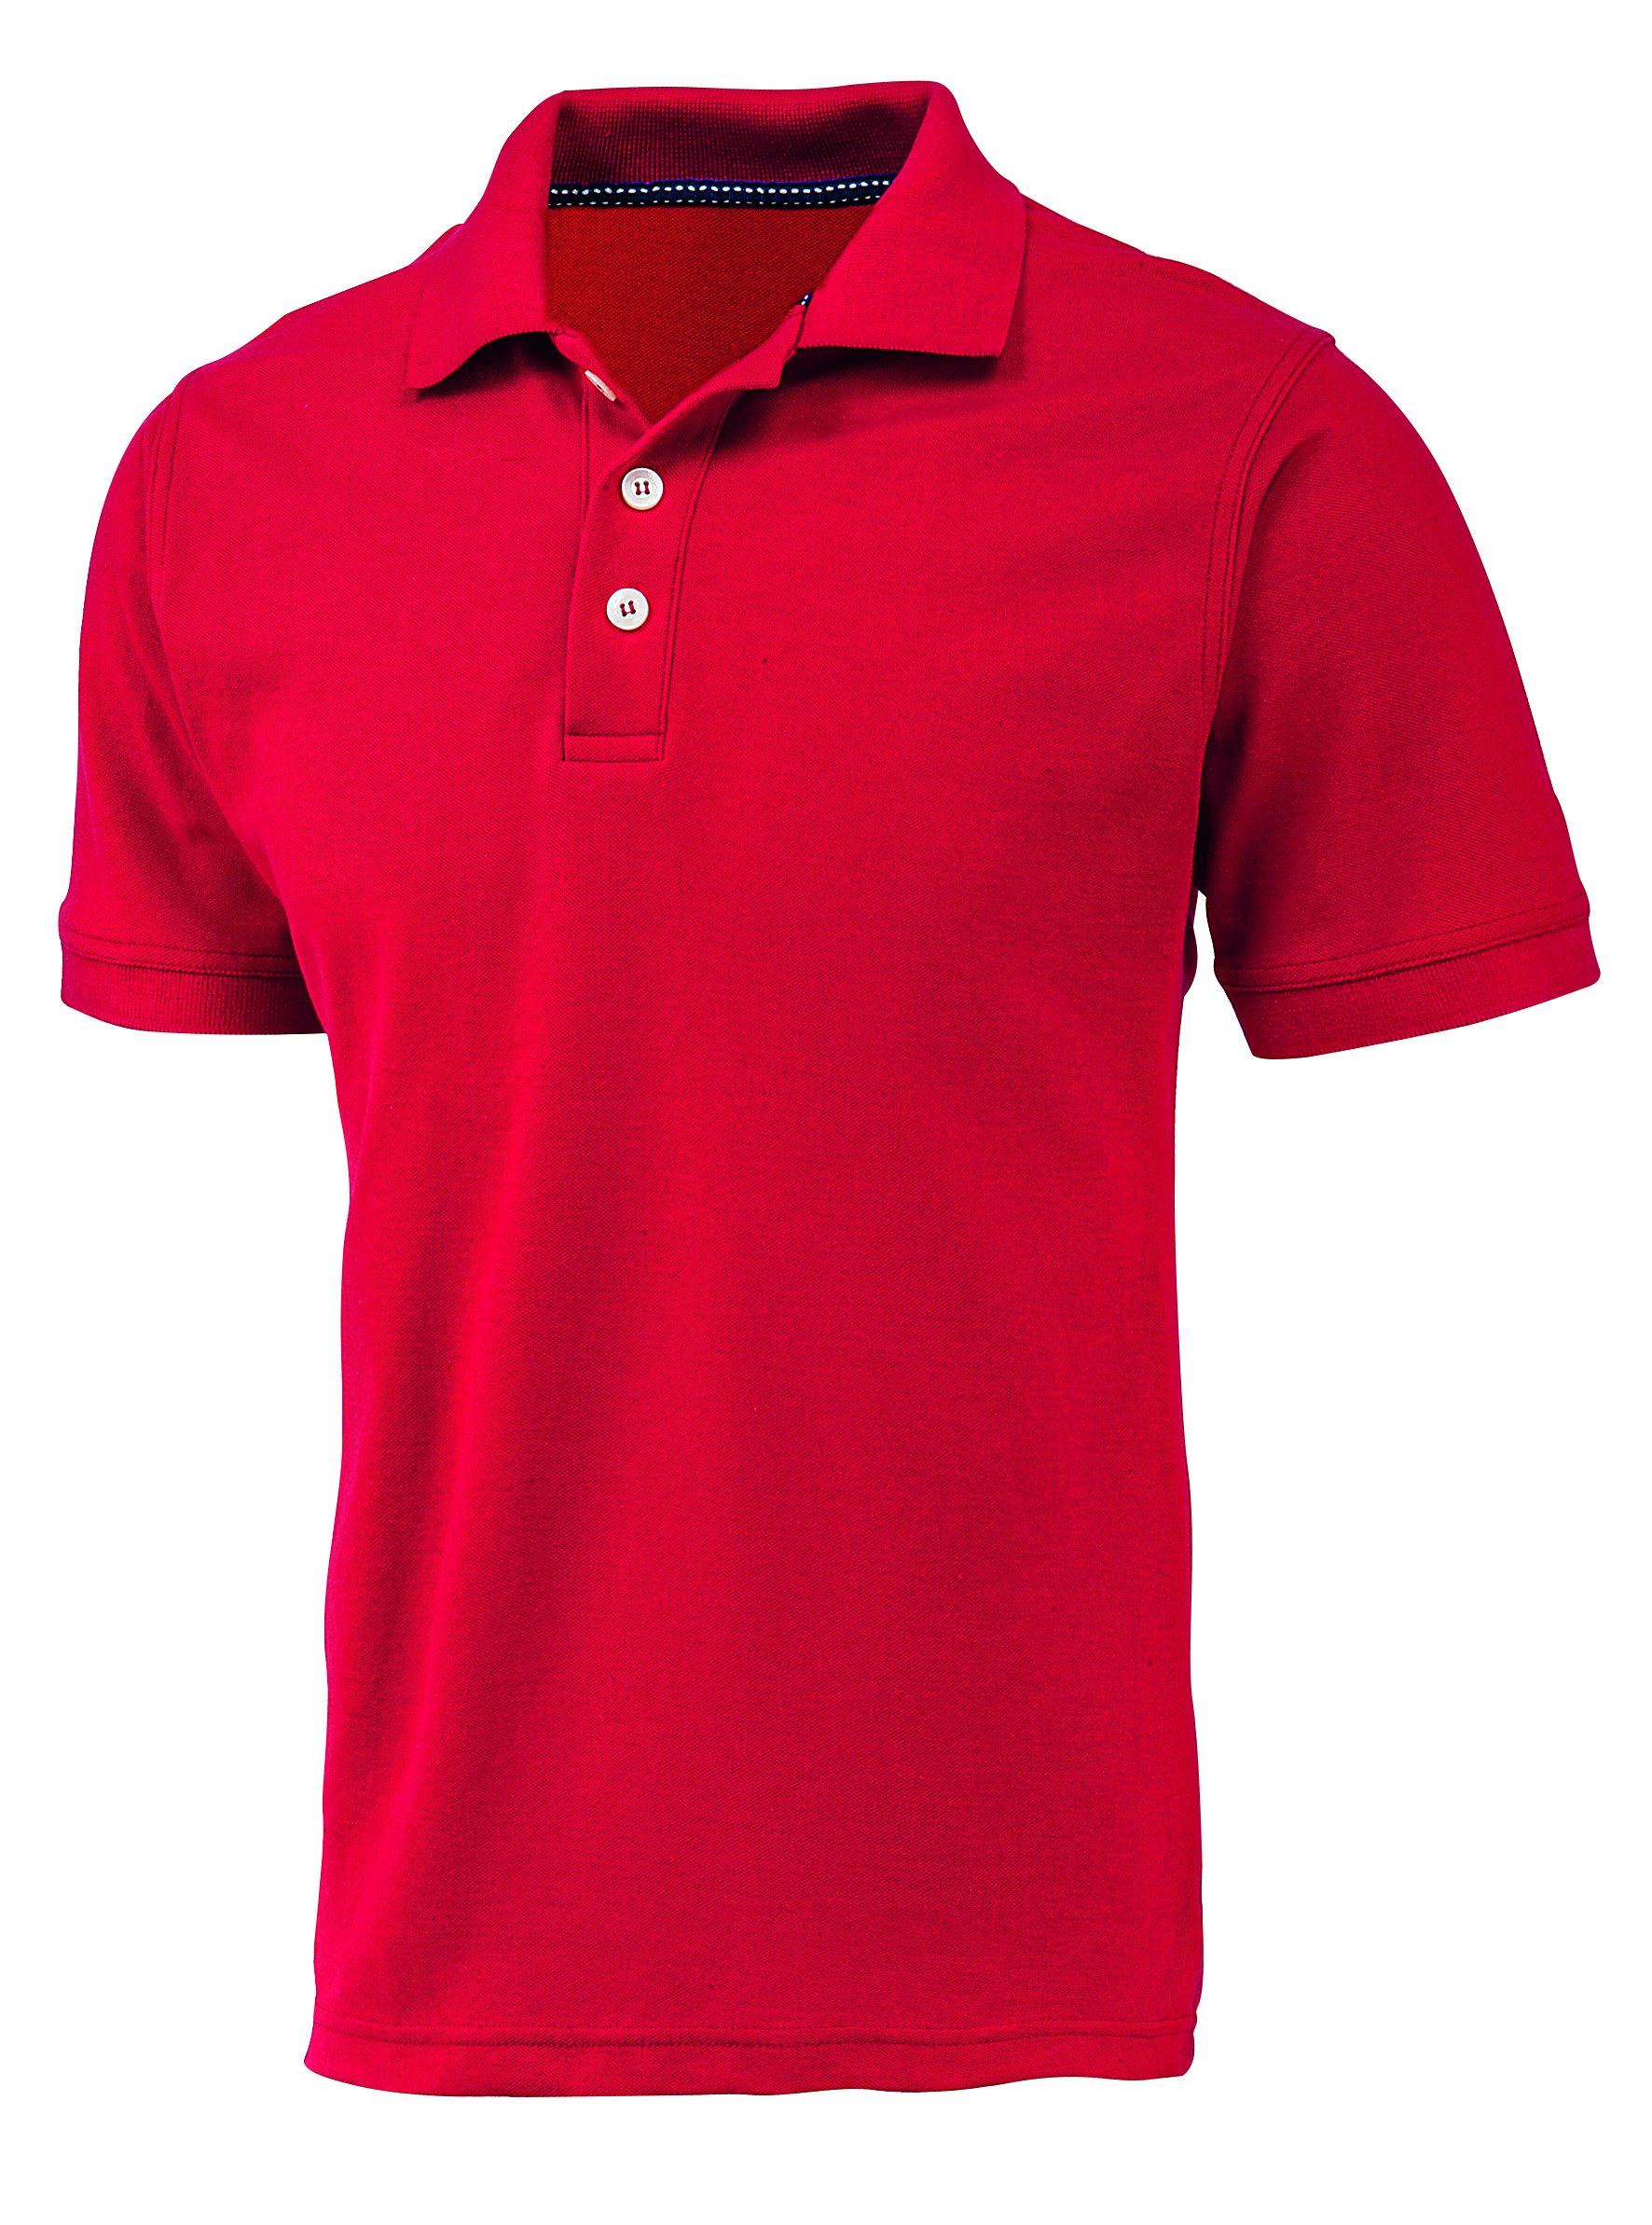 PLAYERA AIRMAN POLO TENNIS COLOR 65 ALG 35 POL 2XL 3XL